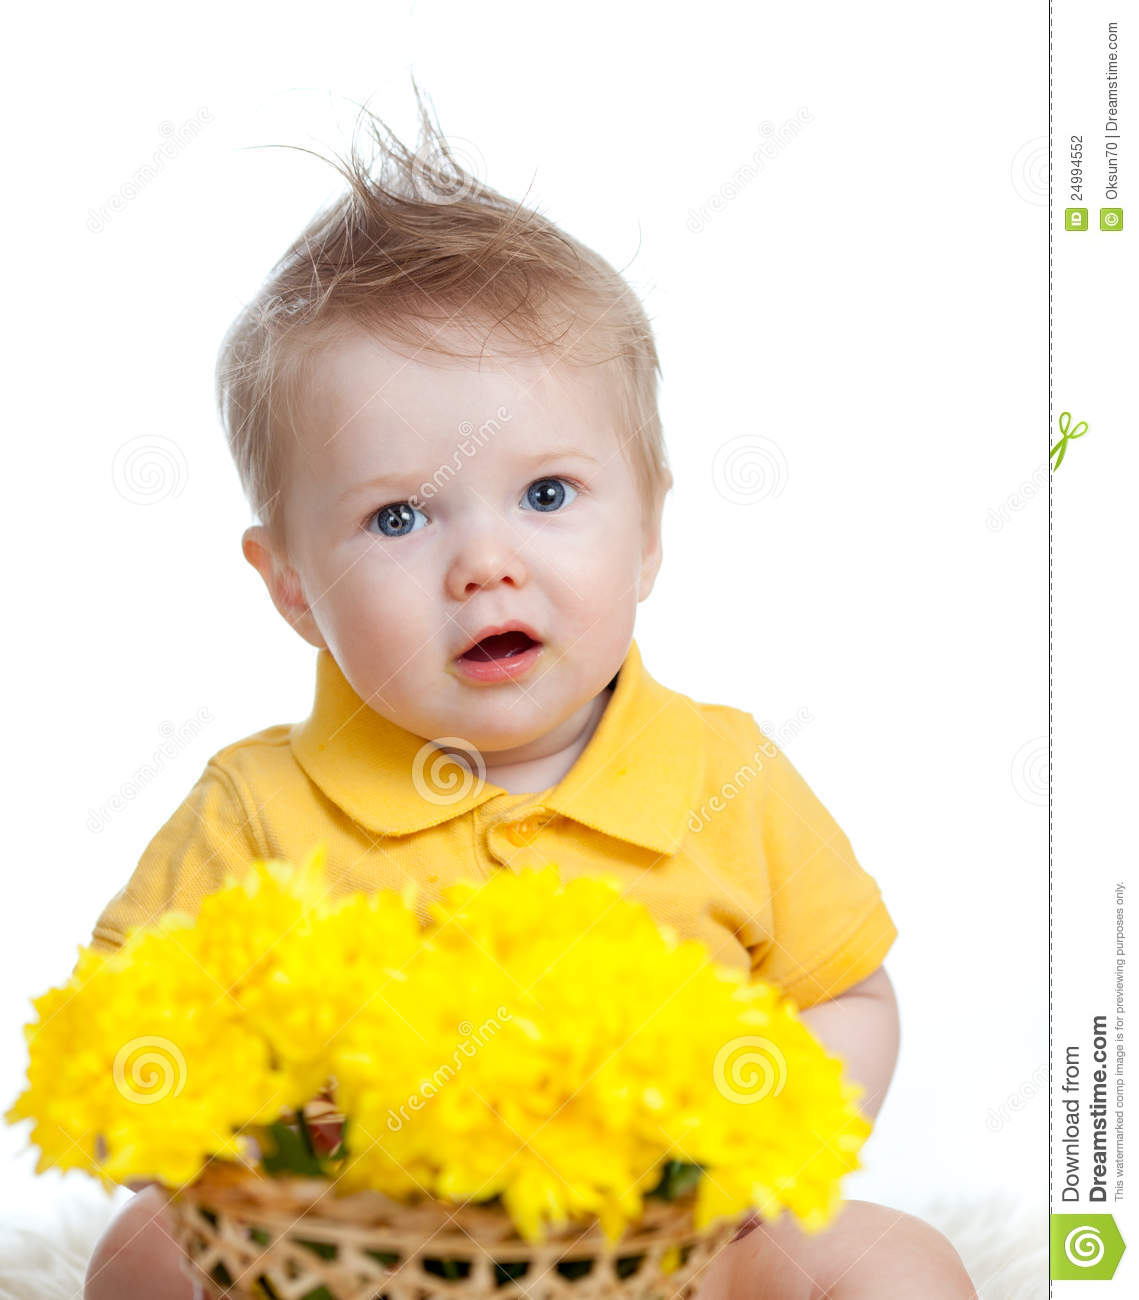 cute baby boy holding basket with yellow flowers stock photo - image